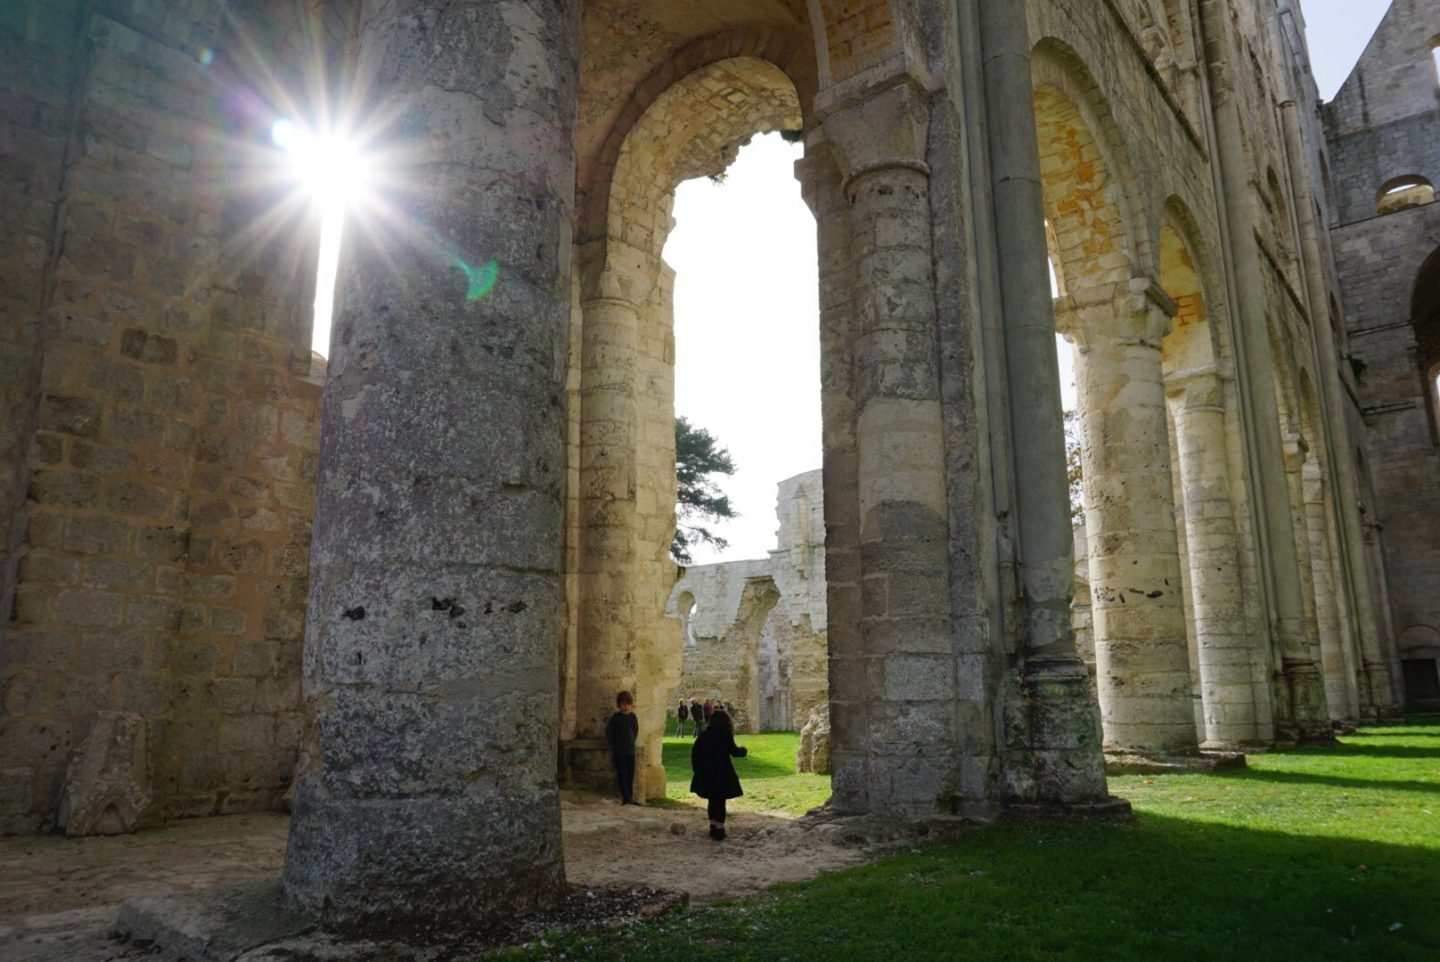 A tour of Jumièges Abbey with kids